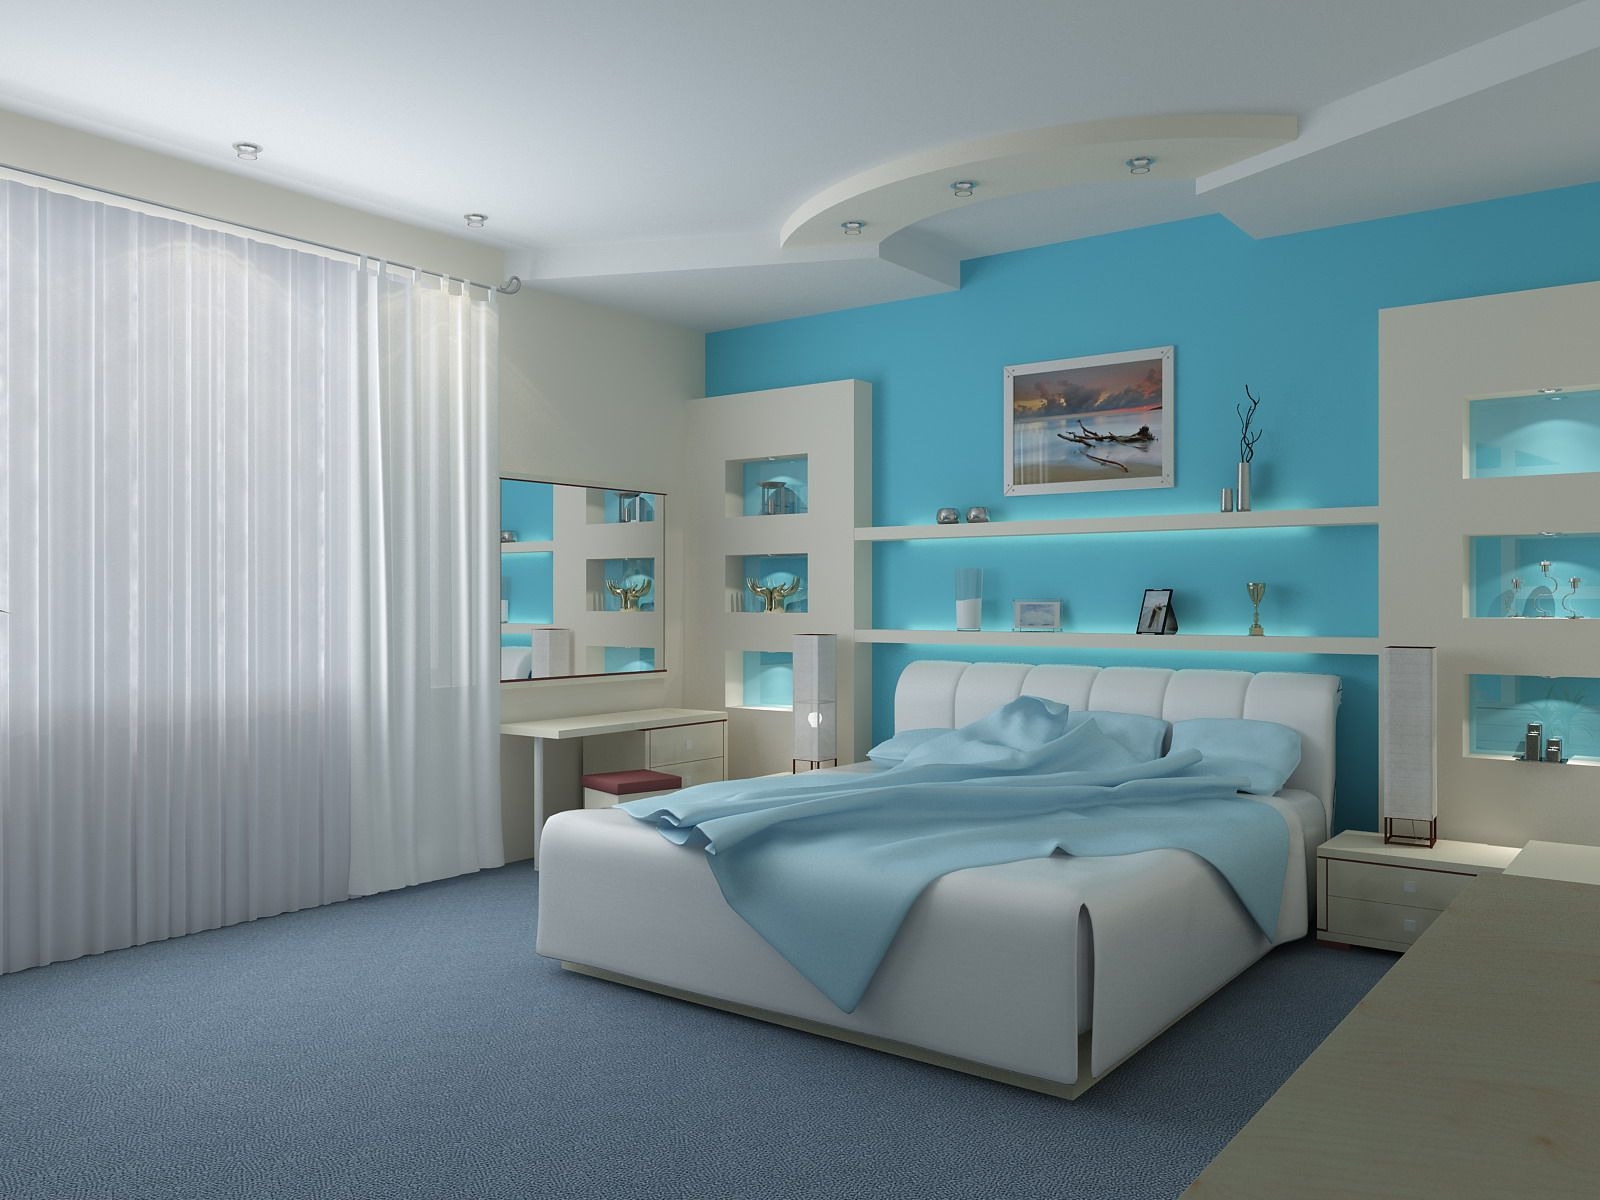 bedroom-wonderful-blue-bedrooms-with-modern-bed-and-gray-area-rugs-plus-white-curtains-beach-style-blue-bedrooms-for-nice-your-bedroom-decor-ideas-tiffany-blue-bedrooms-tiffany